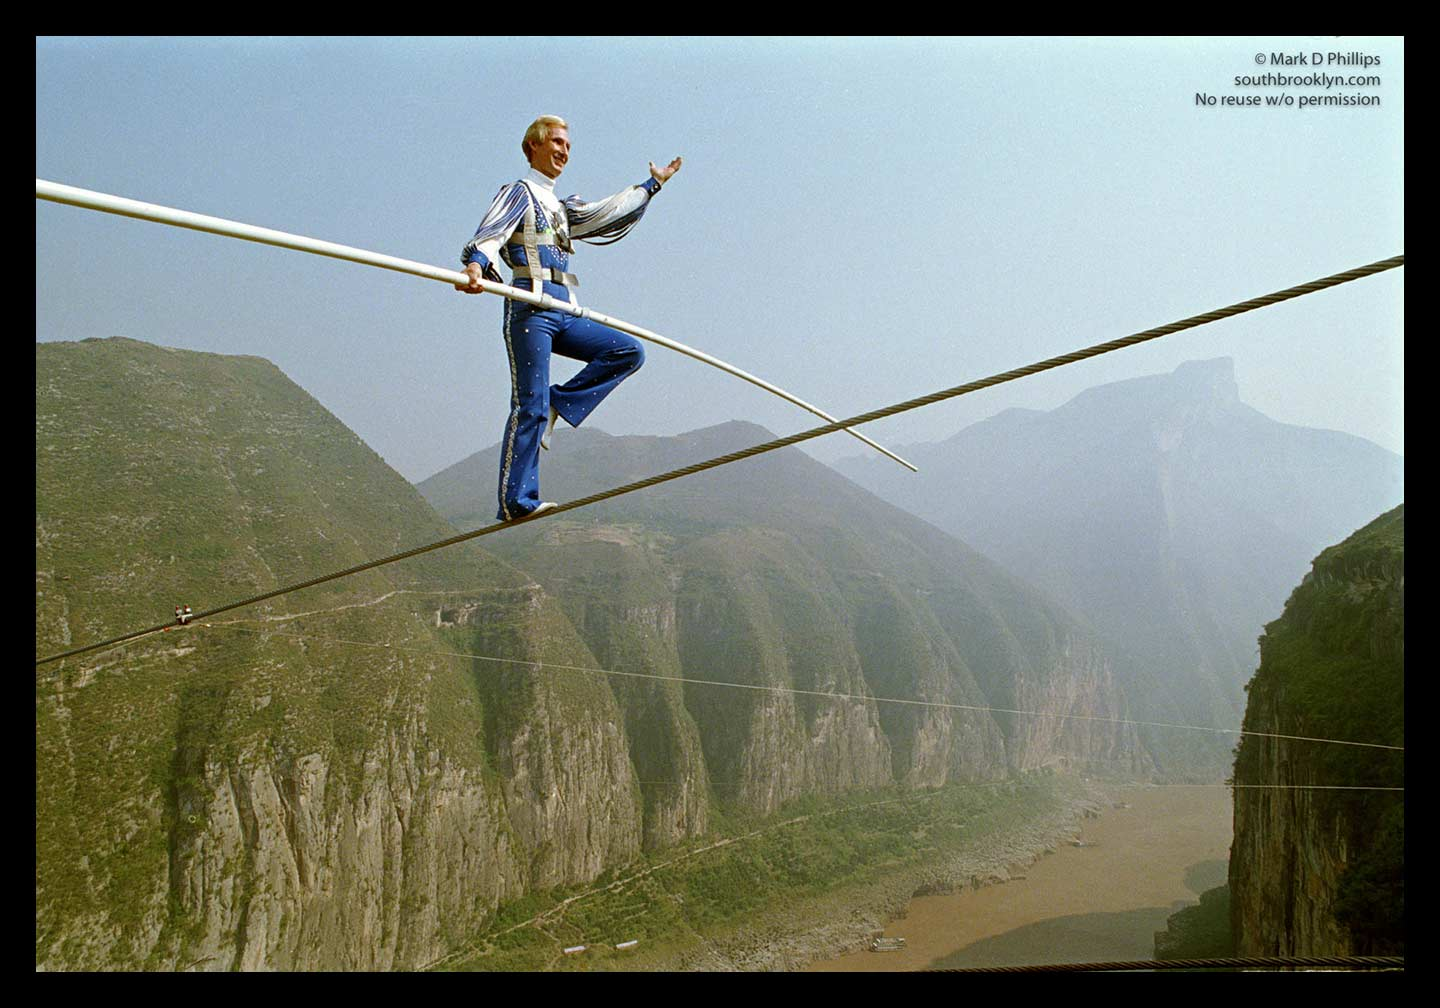 "Framed image of Jay Cochrane, ""The Prince of the Air"", completes The Great China Skywalk over the Yangtze River in Qutang Gorge, China, on October 28, 1995. The skywalk was and is the greatest ever made spanning half a mile between the canyon walls and 1,350 feet above the river. ©Mark D Phillips"